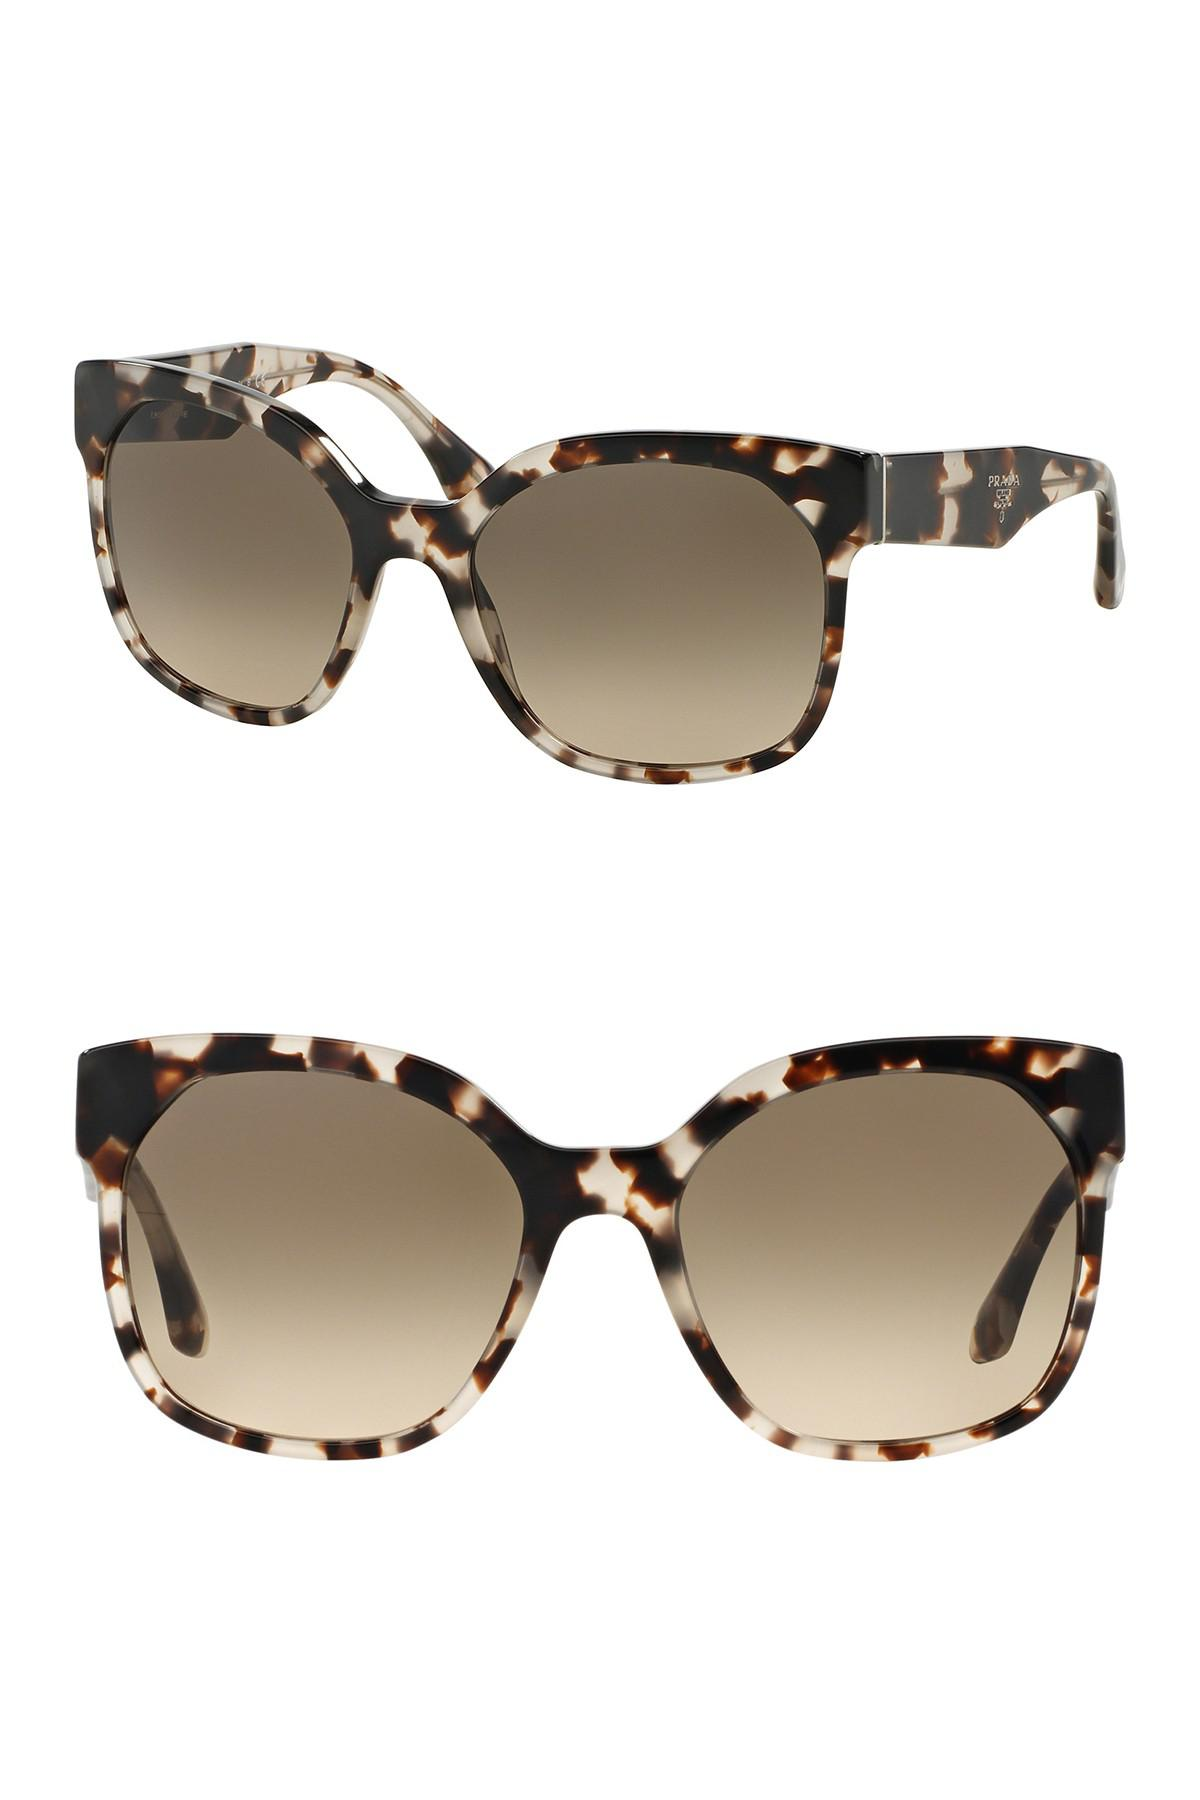 228d7abd120f9 Lyst - Prada Women s 57mm Irregular Cat Walk Sunglasses